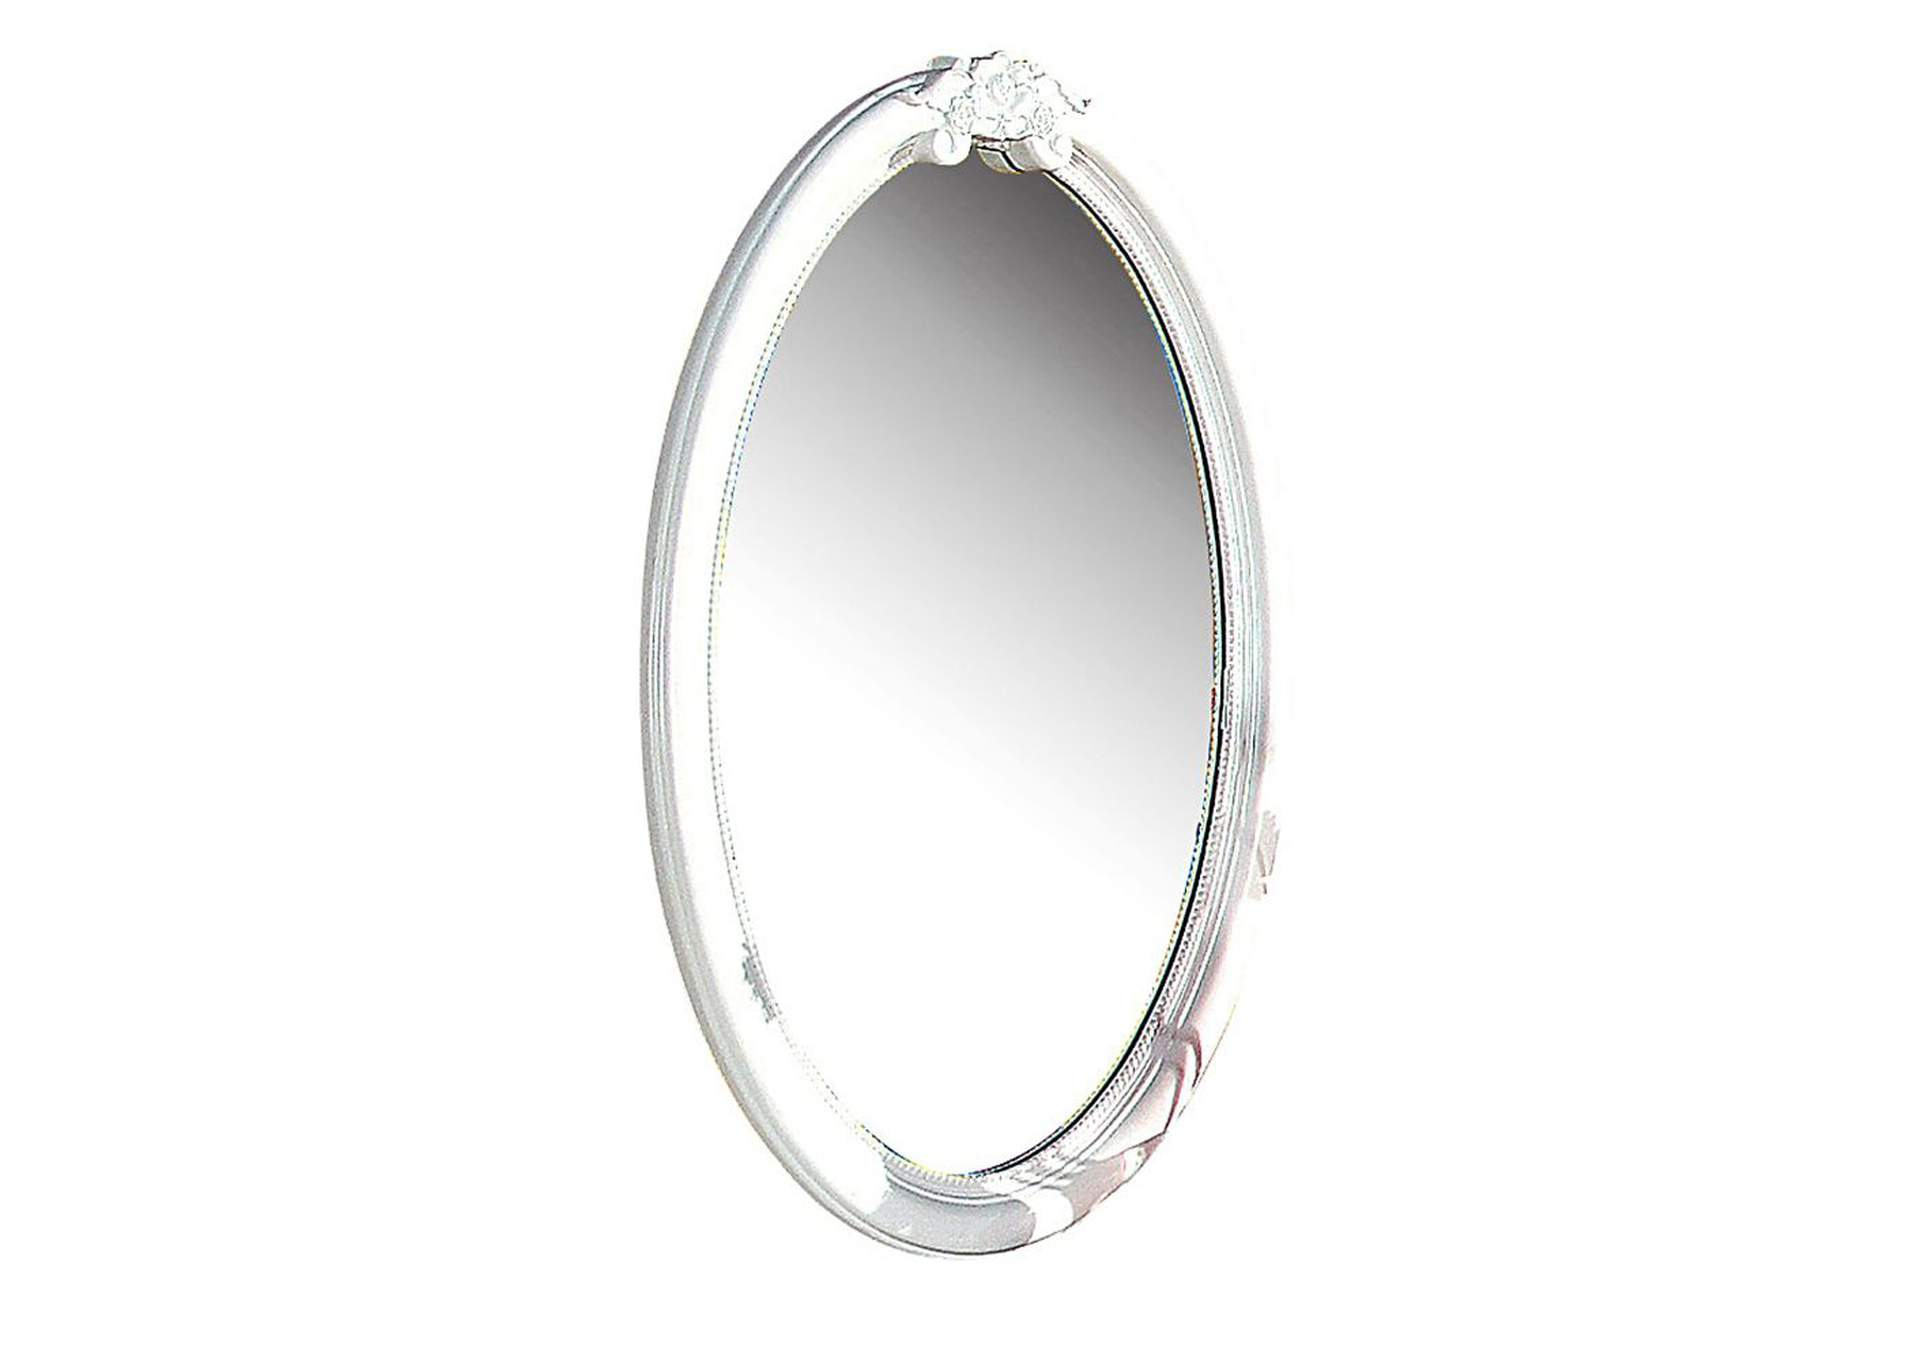 Flora White Oval Mirror,Acme